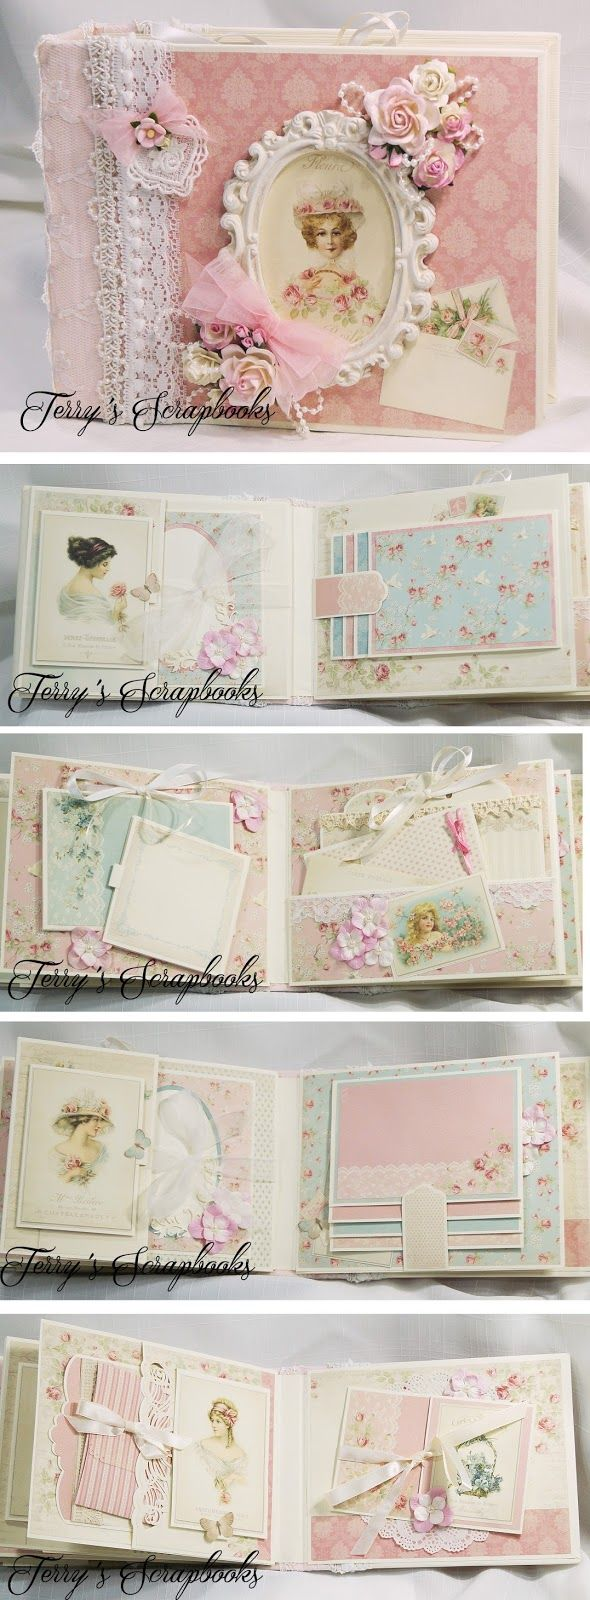 Terry's Scrapbooks: Pion Designs Paris Flea Market Scrapbook Mini Albu...